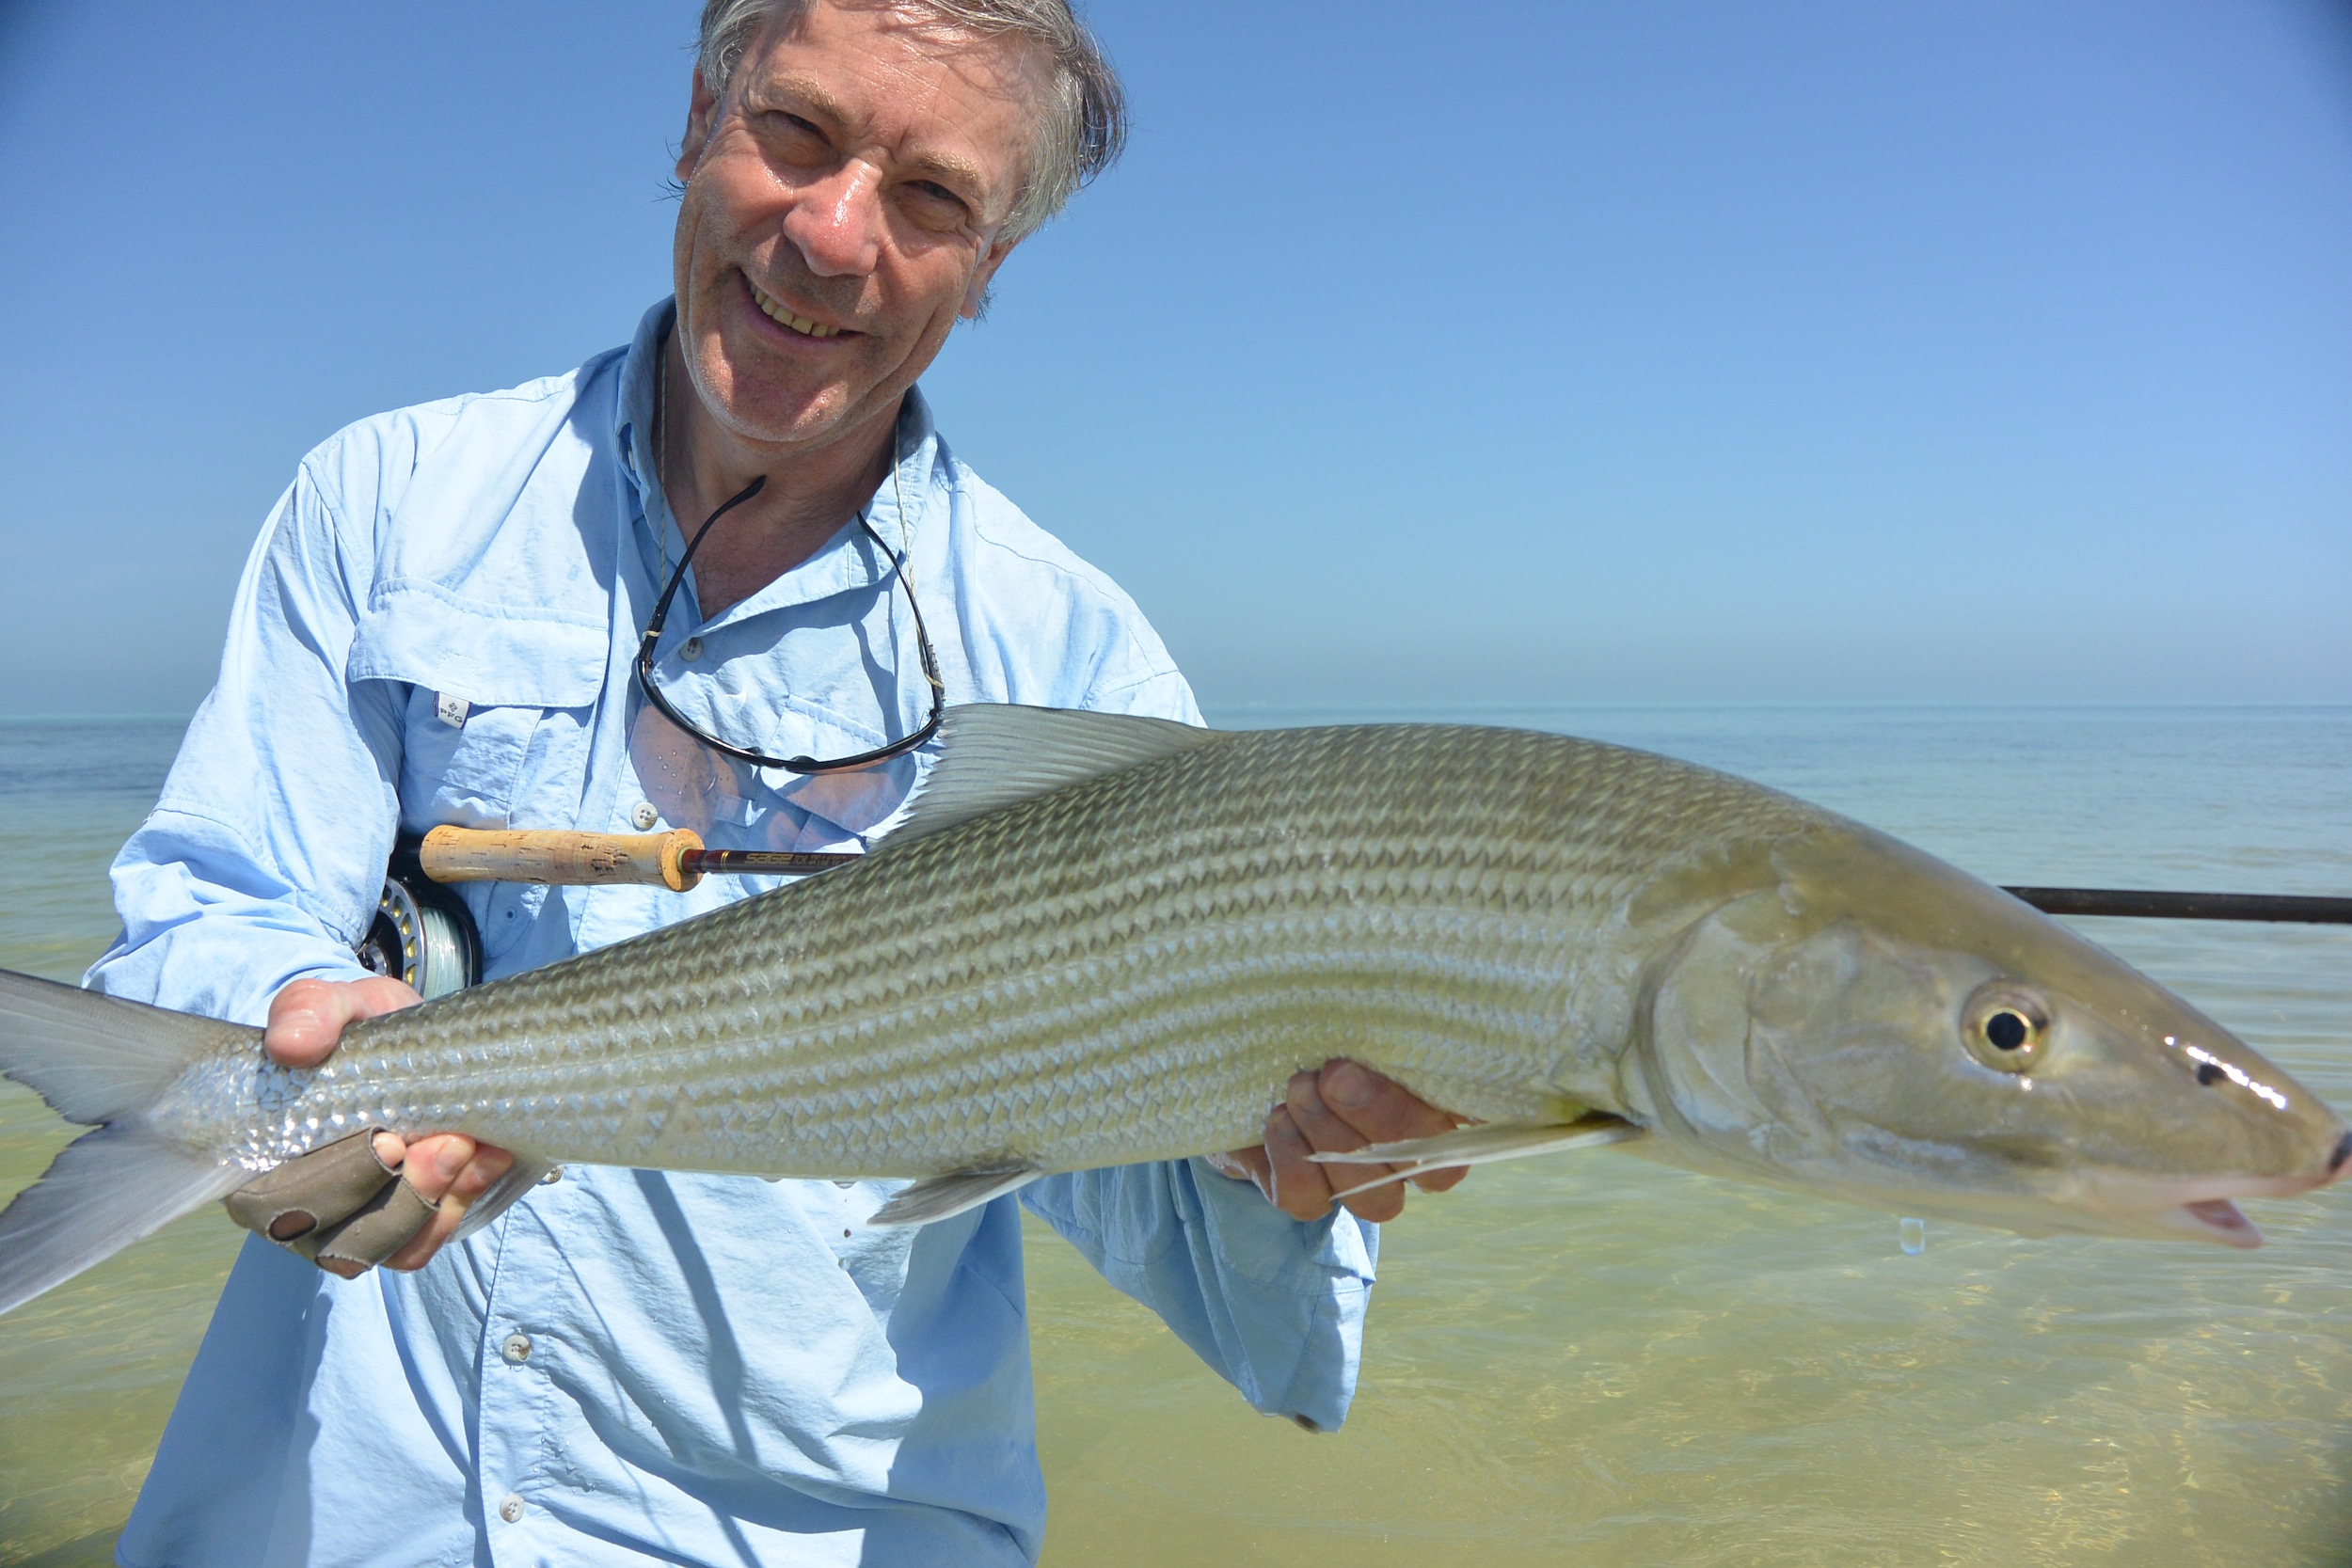 Trophy bonefish